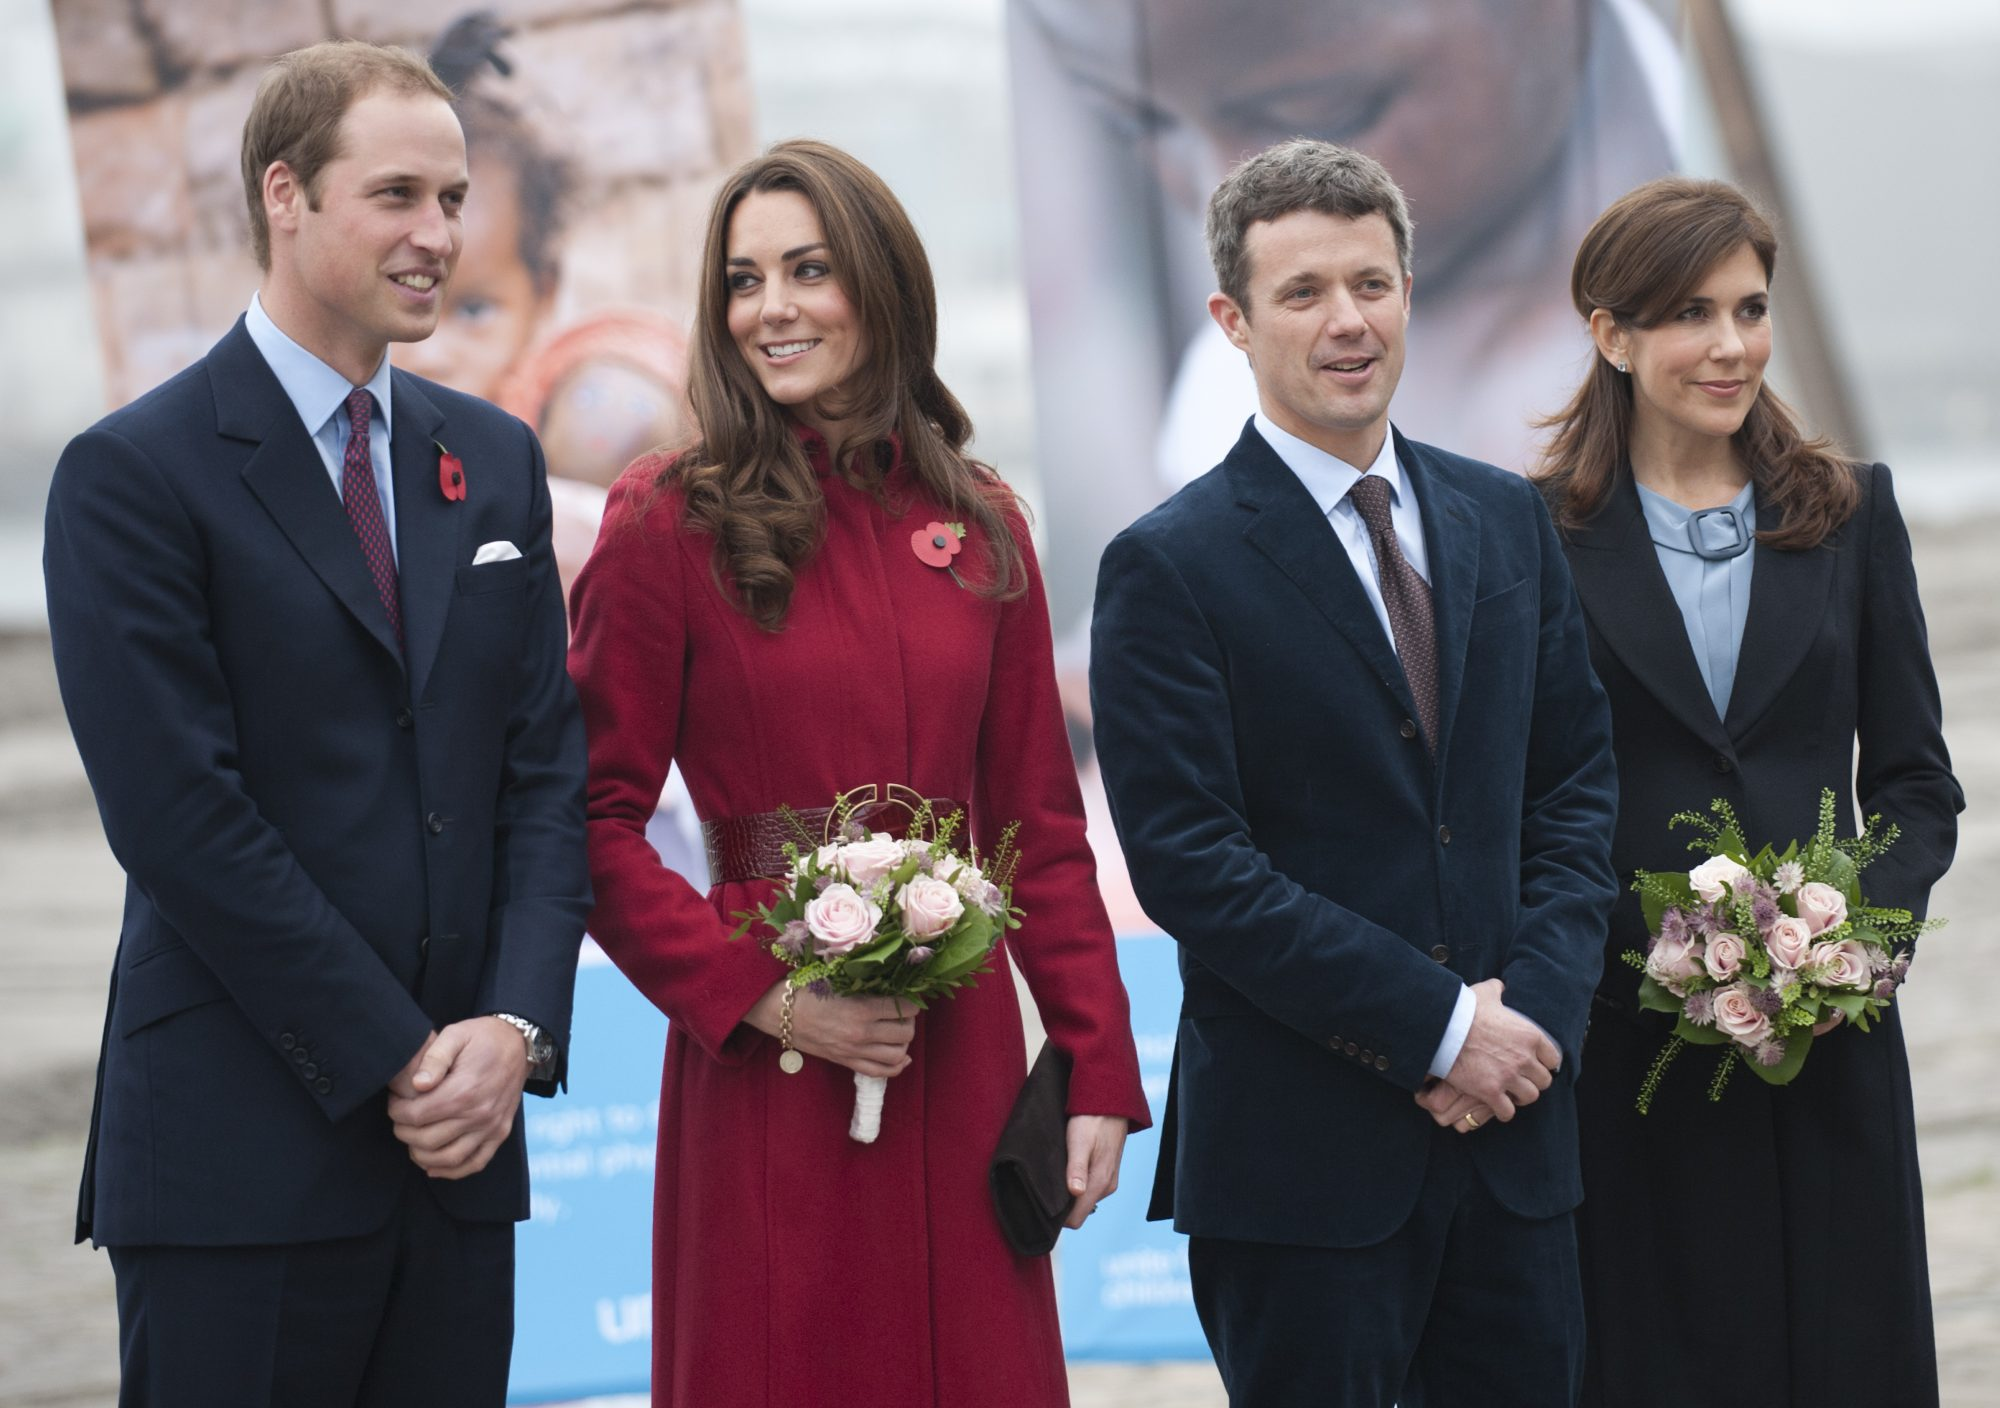 Prince William And Catherine, Denmark royals